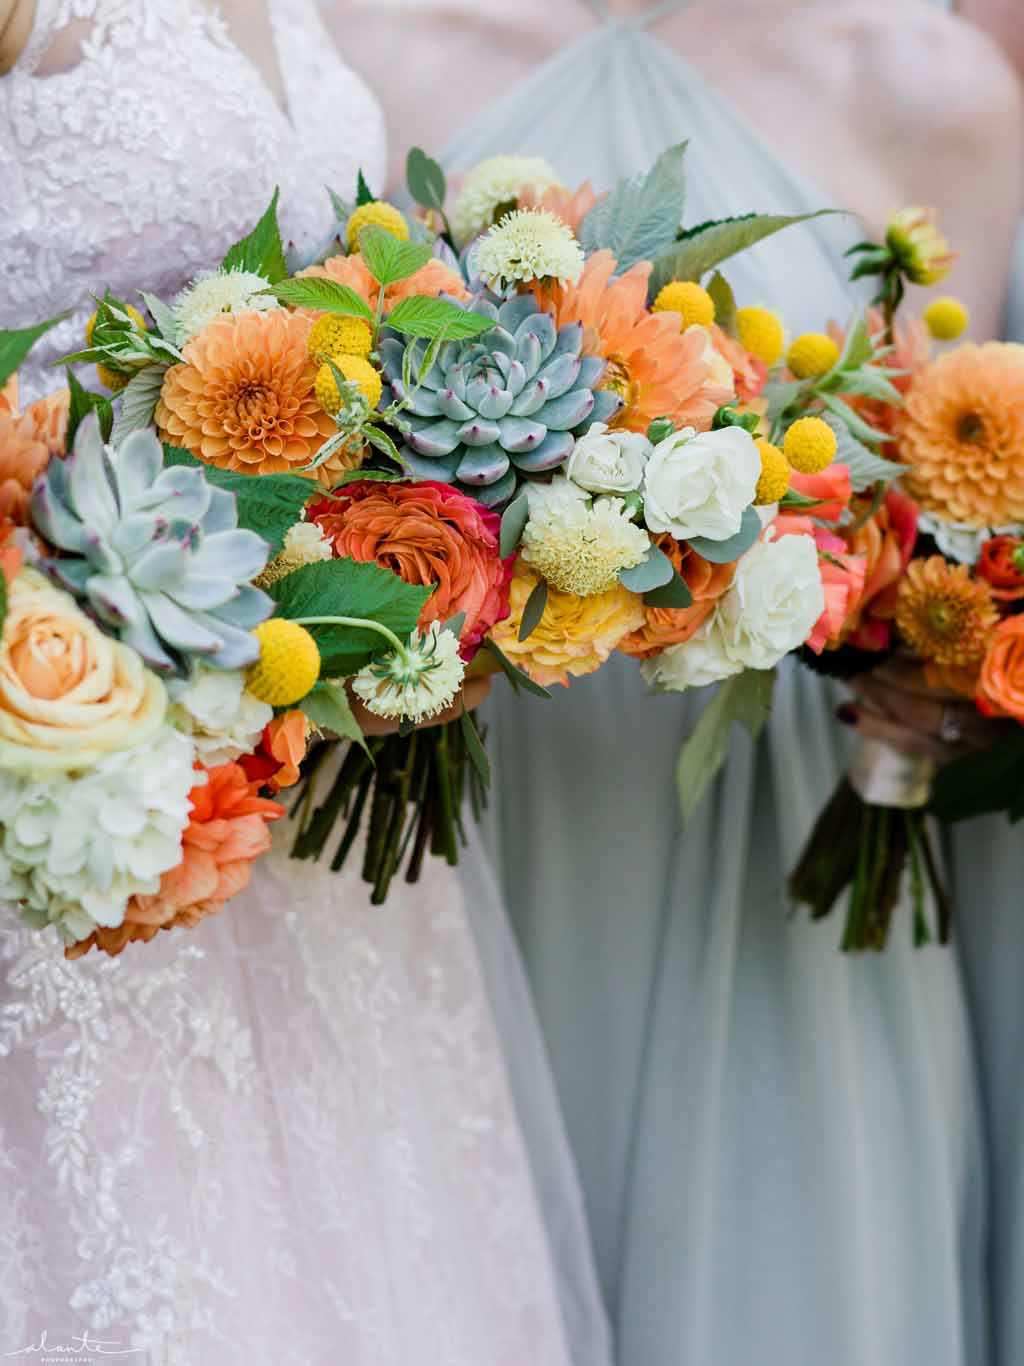 Summer bridal bouquet in orange, yellow, and grey colors with succulents, roses, and craspedia flowers.